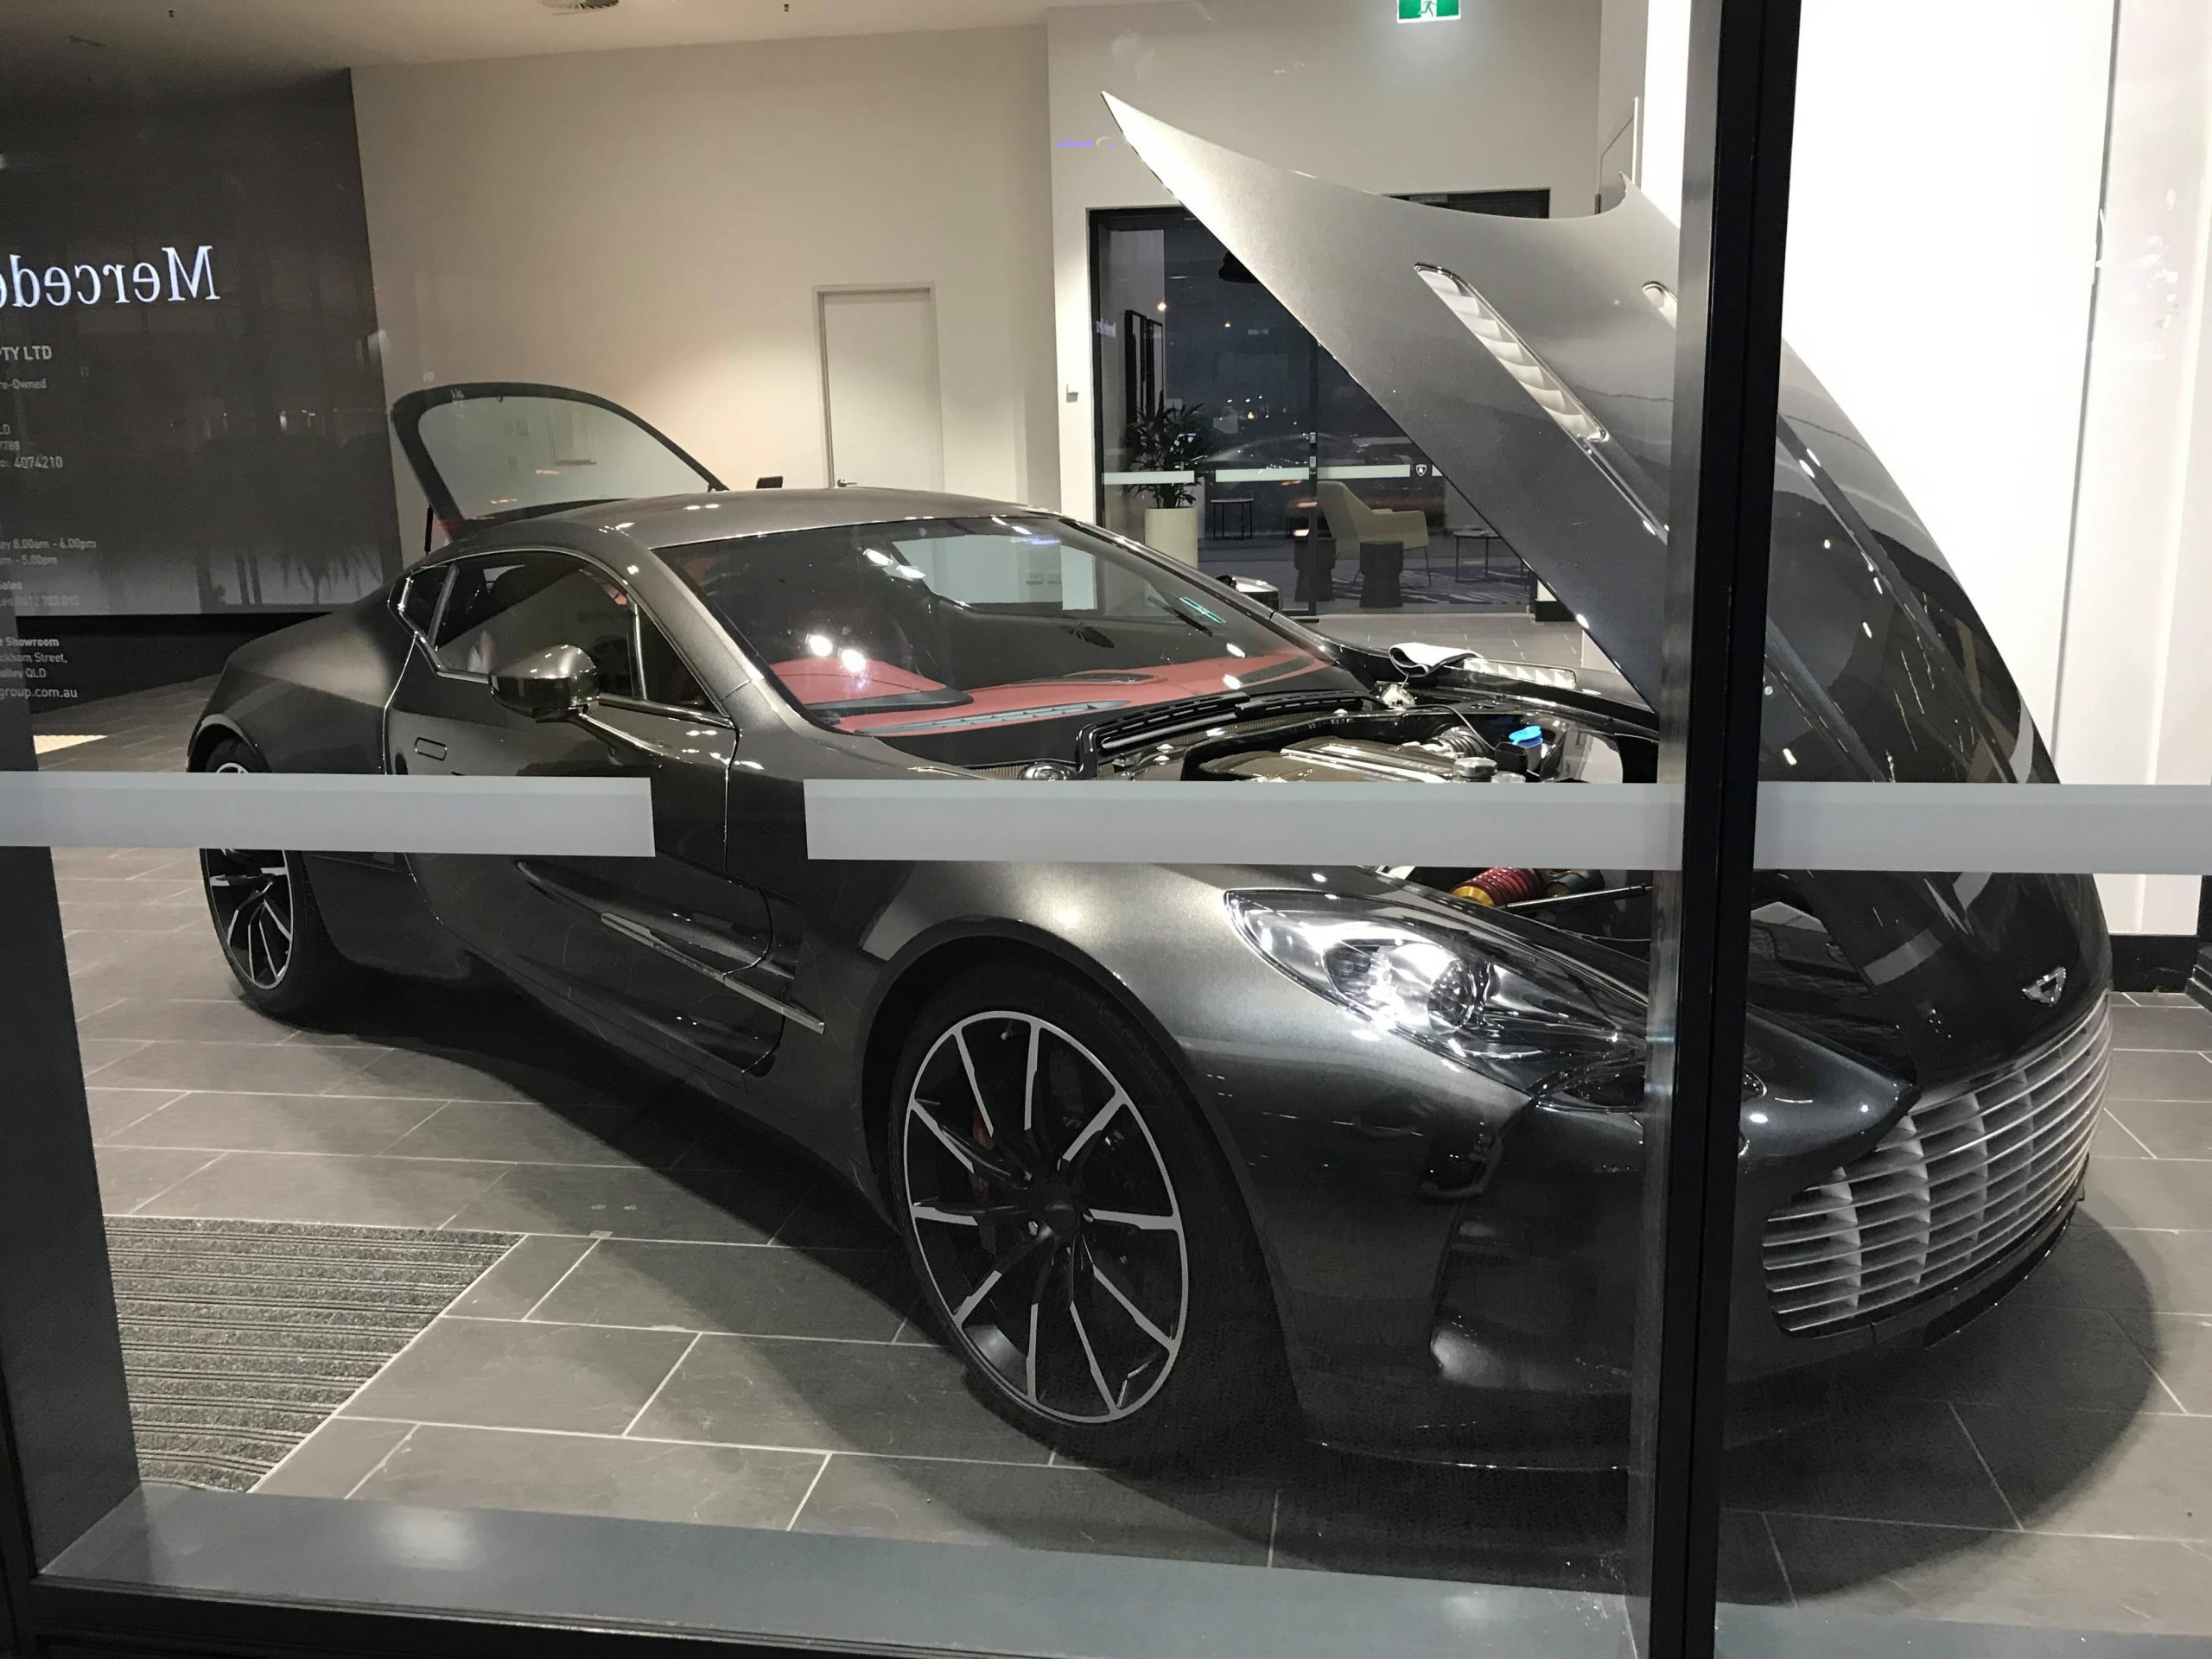 Was taking a walk through Brisbane AU, Happened to find this Aston Martin One 77 at a dealership with only 77 built with only one in Australia that I am aware of. Absolutely crazy chances and a beautiful car!